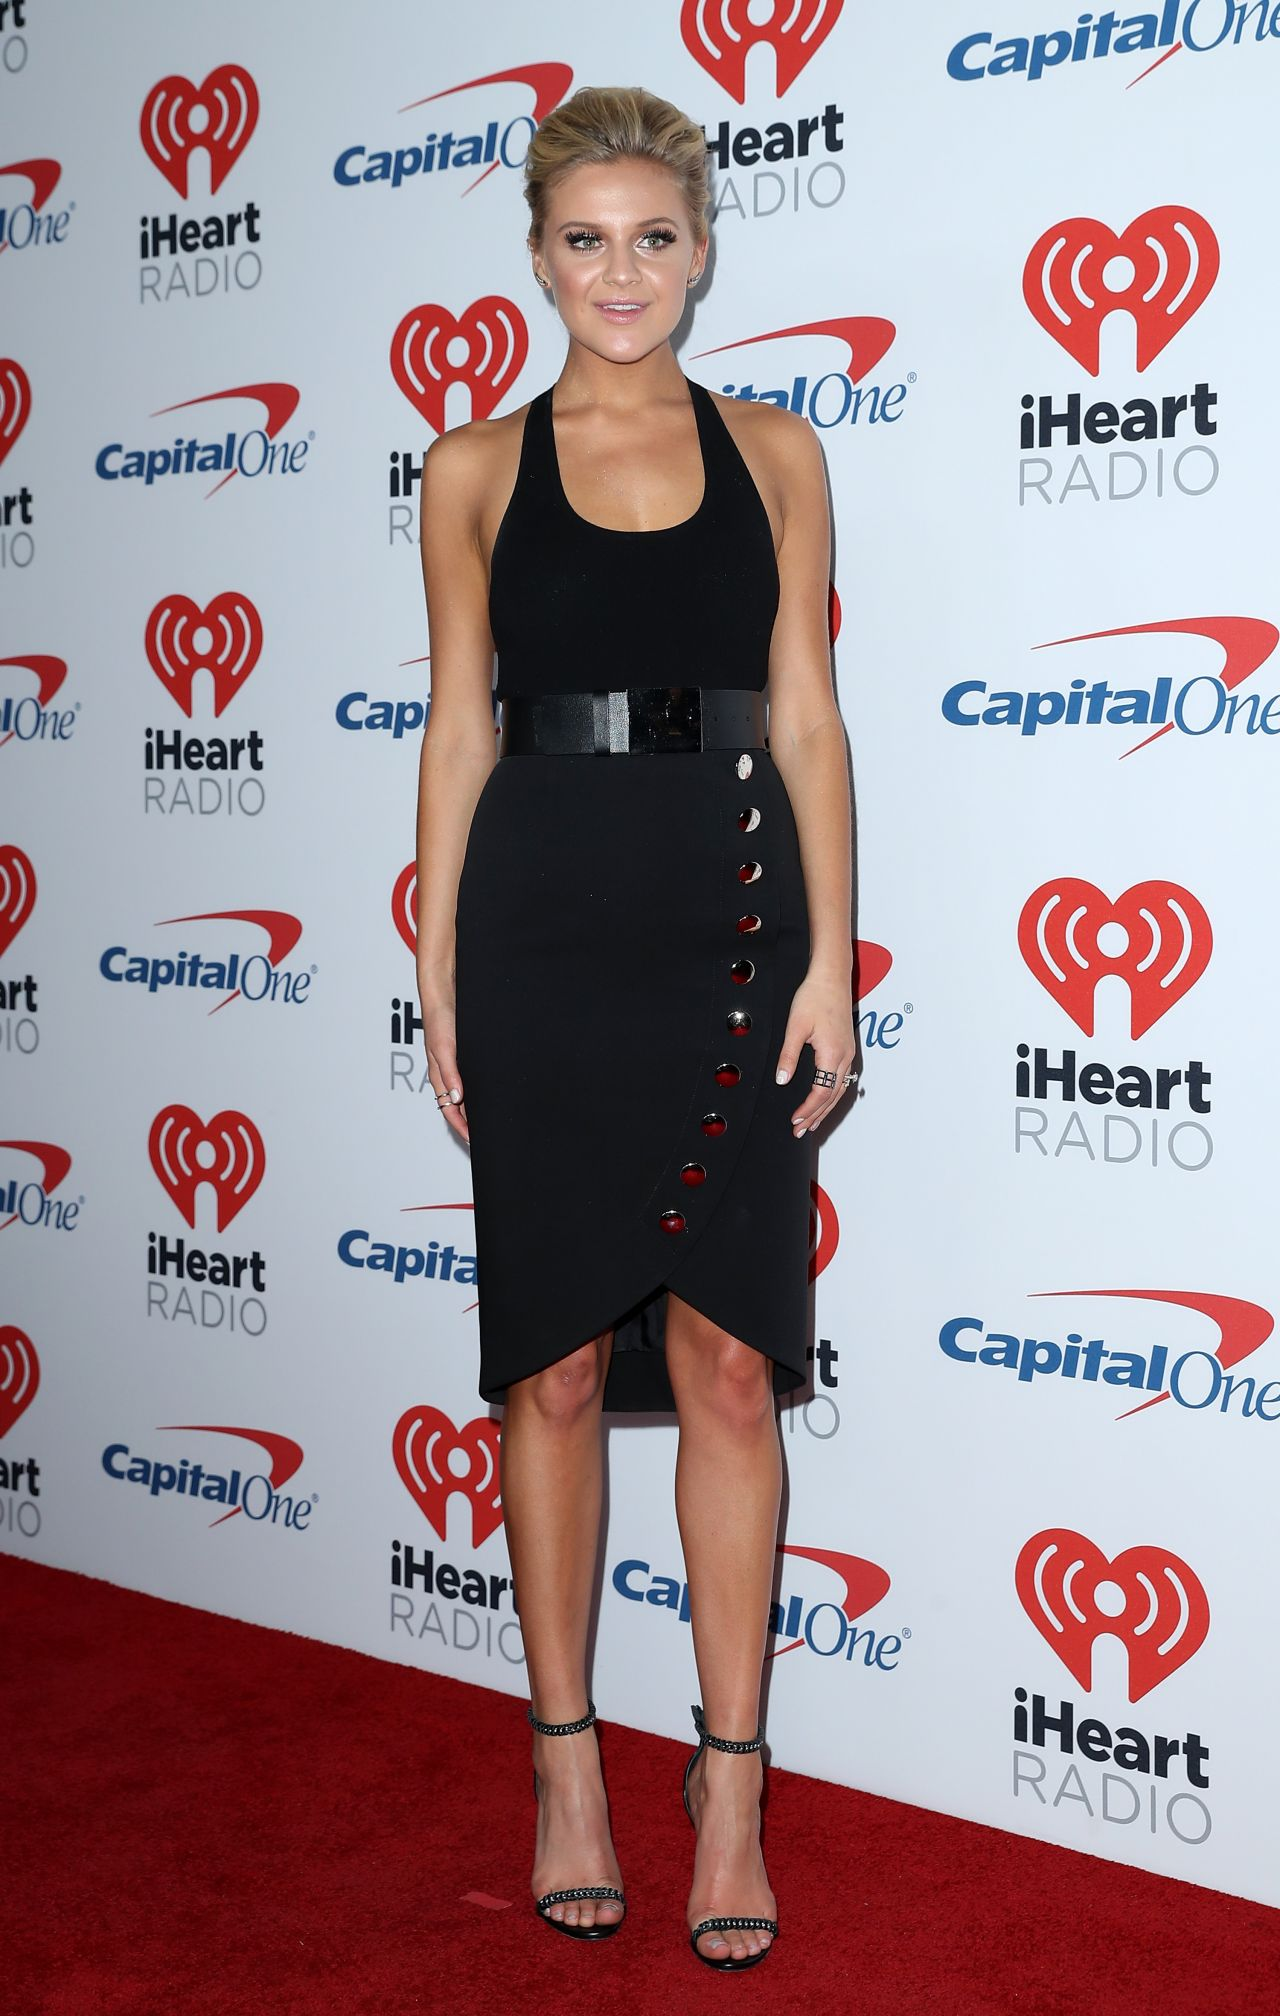 Kelsea Ballerini at iHeartradio Music Festival in Las Vegas